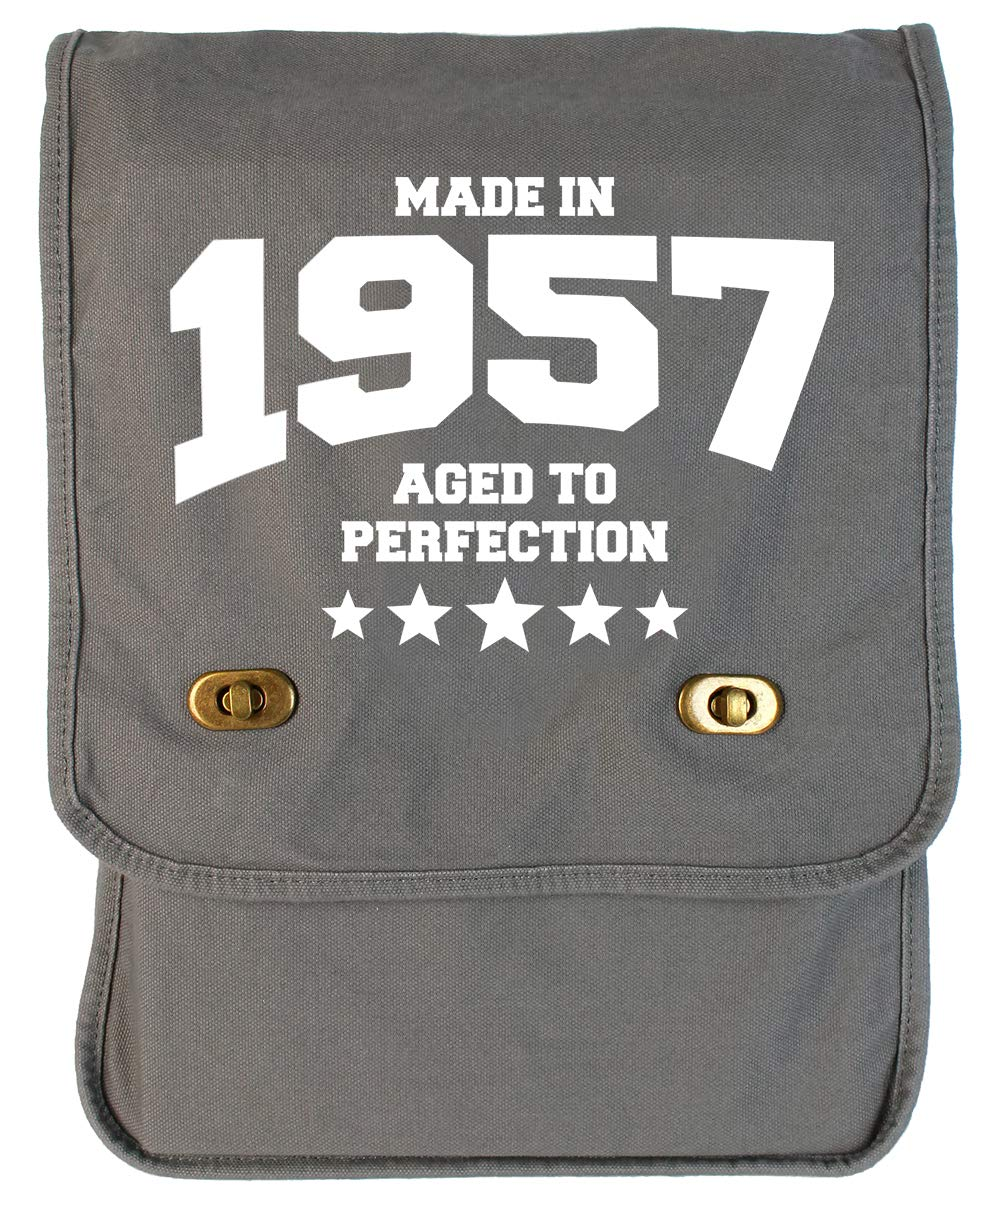 Tenacitee Athletic Aged to Perfection 1957 Grey Brushed Canvas Messenger Bag